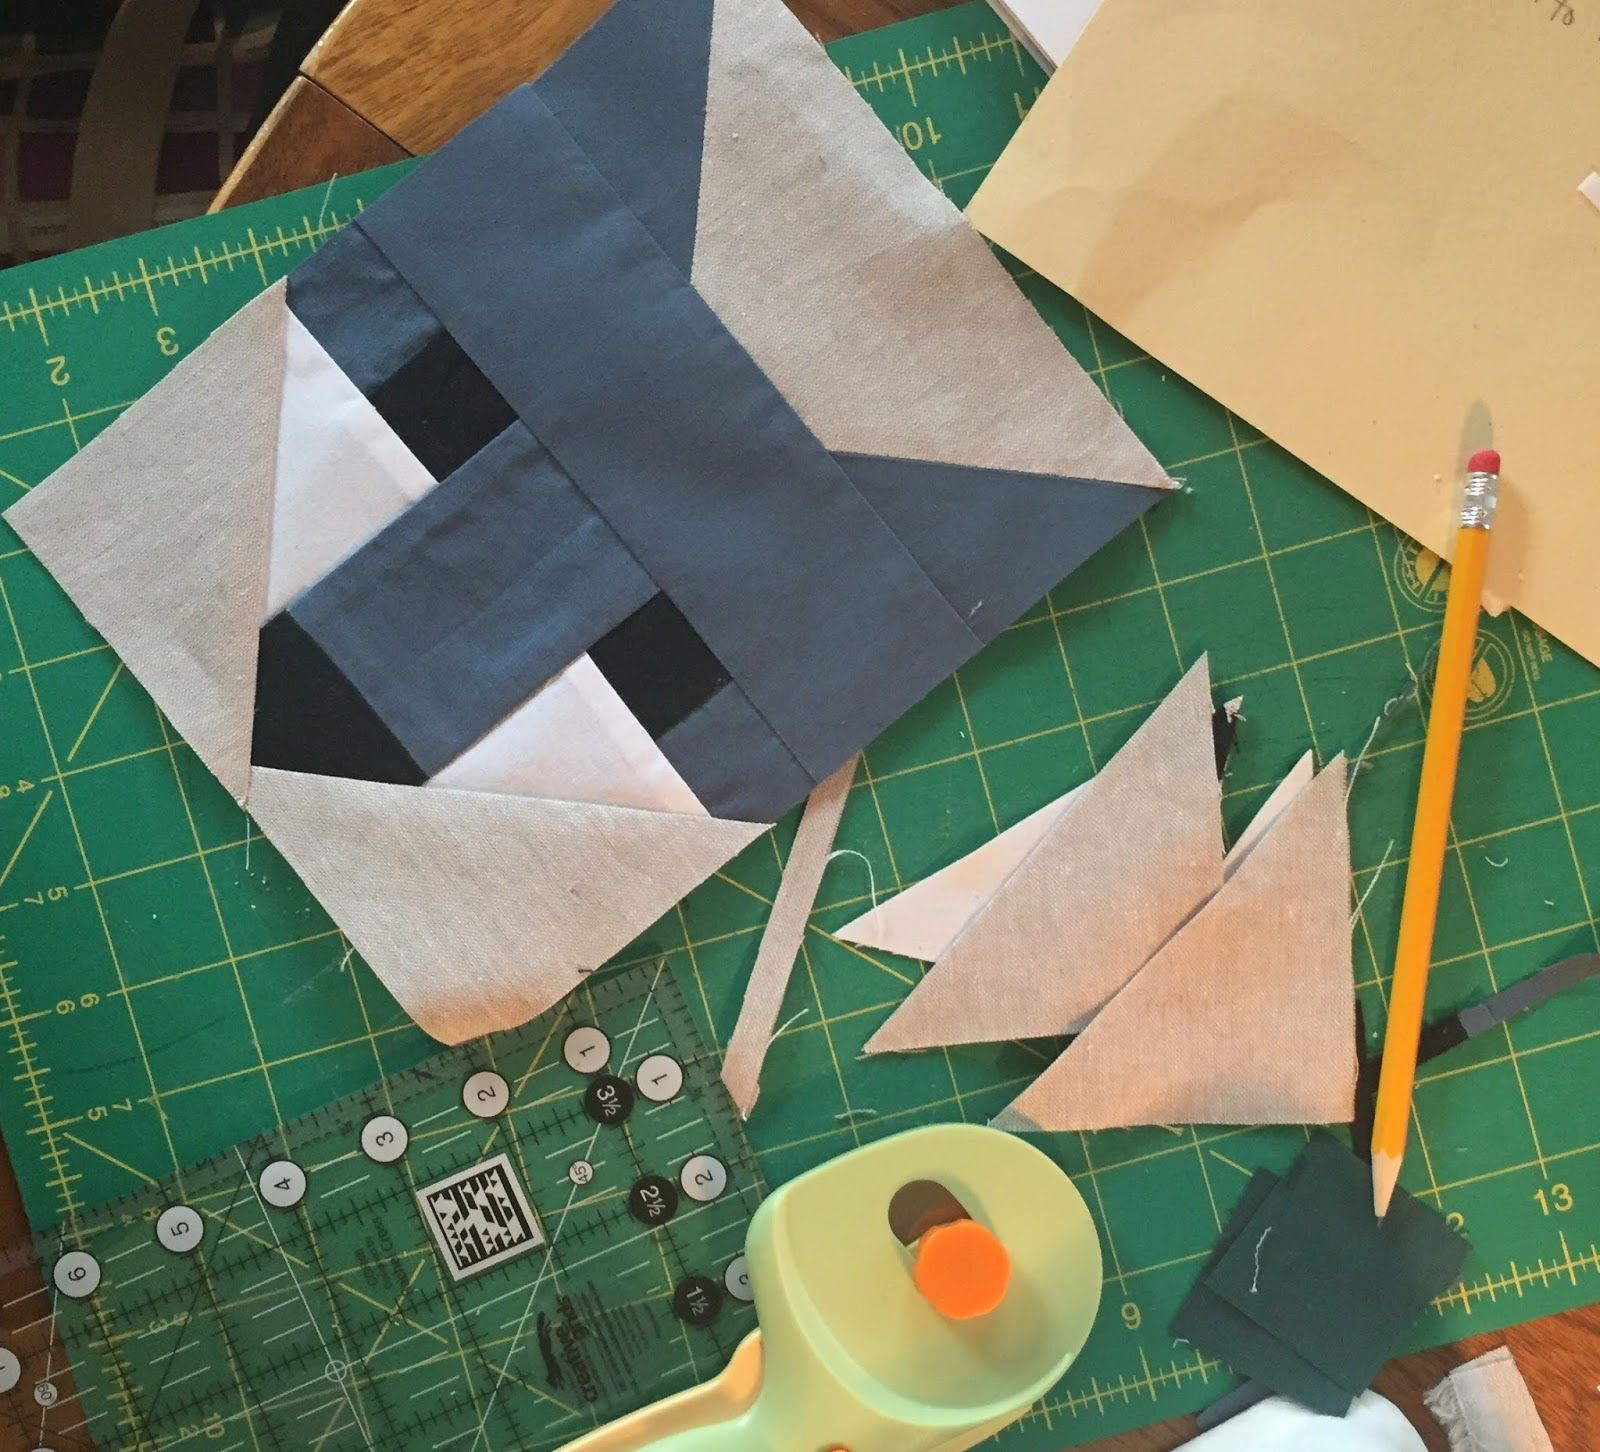 The scheme of patchwork sewing will help to make exclusive things